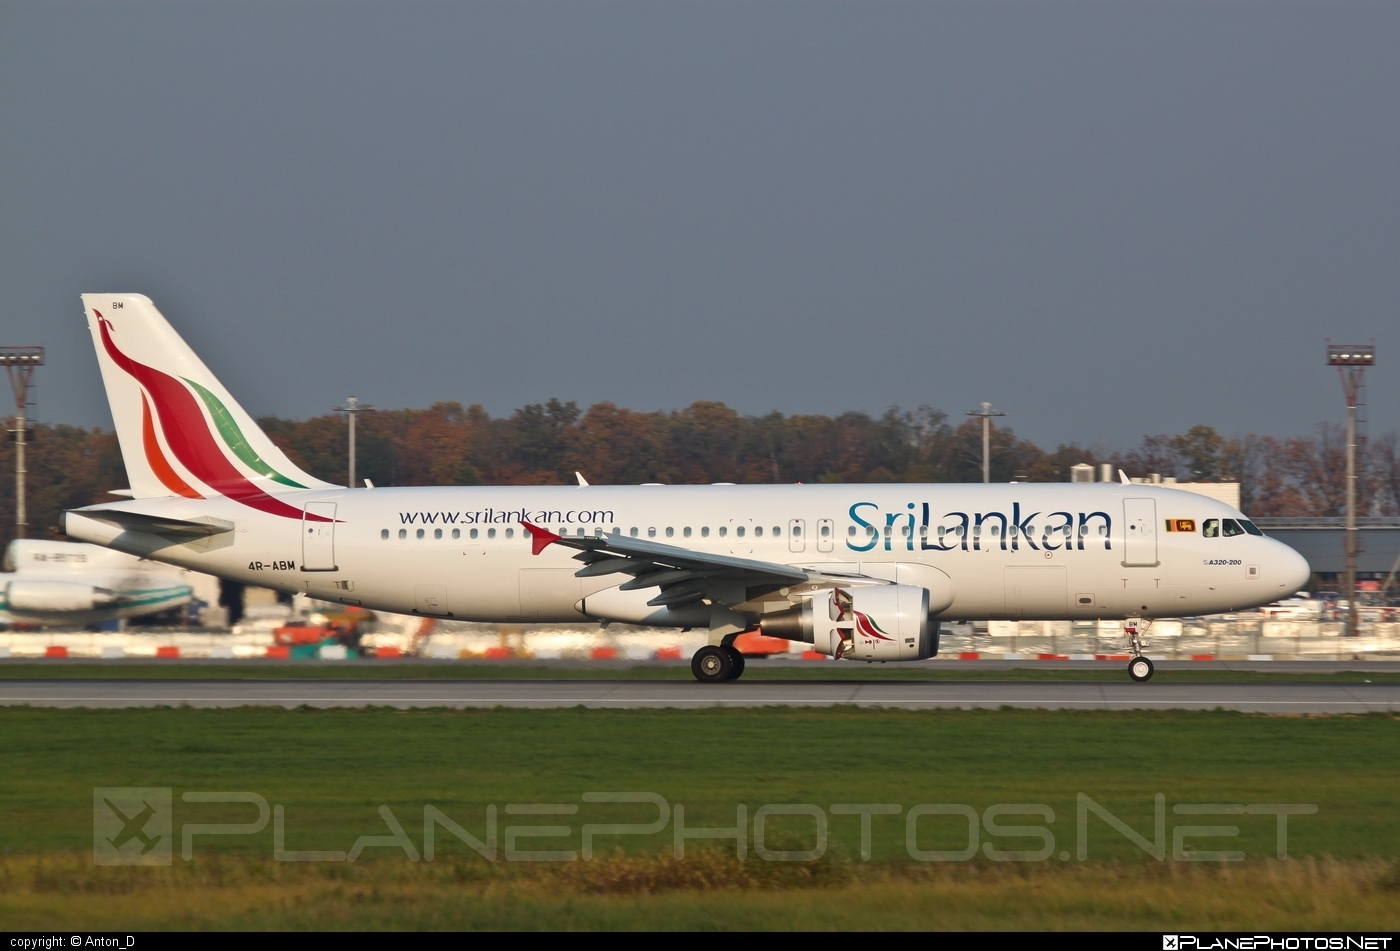 Airbus A320-214 - 4R-ABM operated by SriLankan Airlines #a320 #a320family #airbus #airbus320